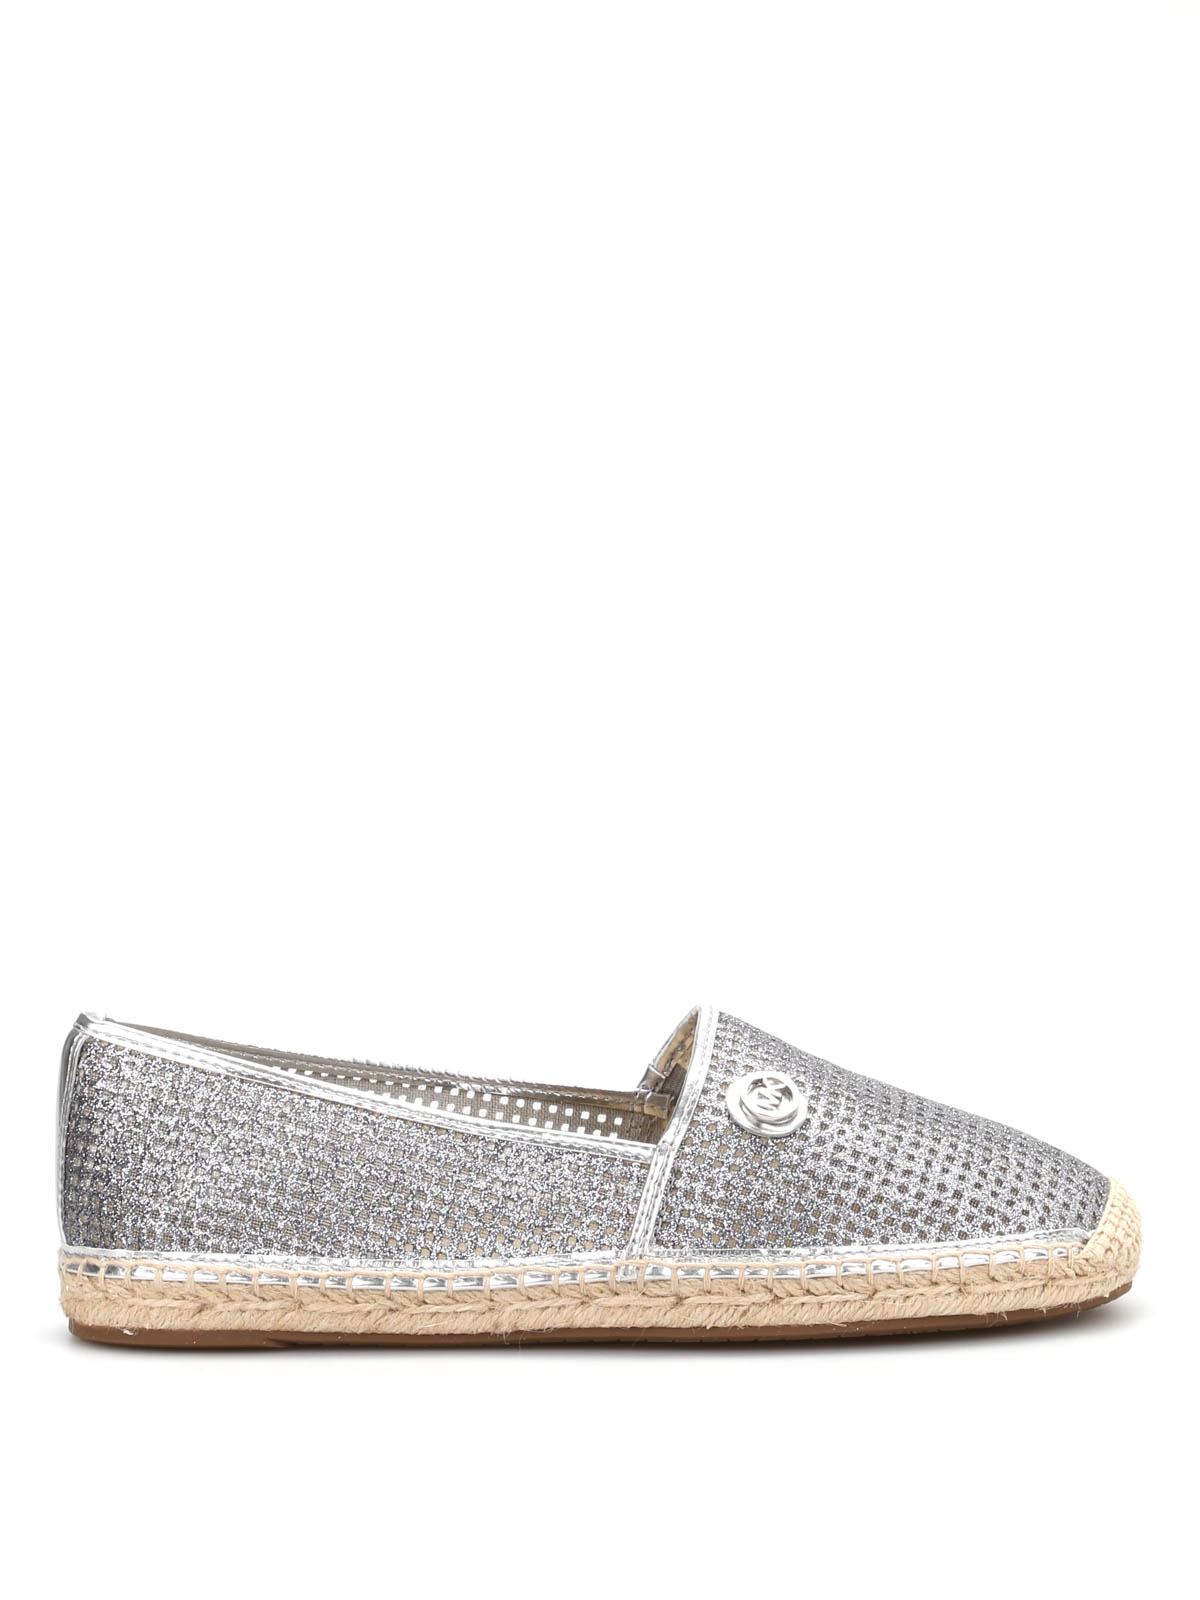 kendrick metallic mesh espadrilles by michael kors espadrilles ikrix. Black Bedroom Furniture Sets. Home Design Ideas